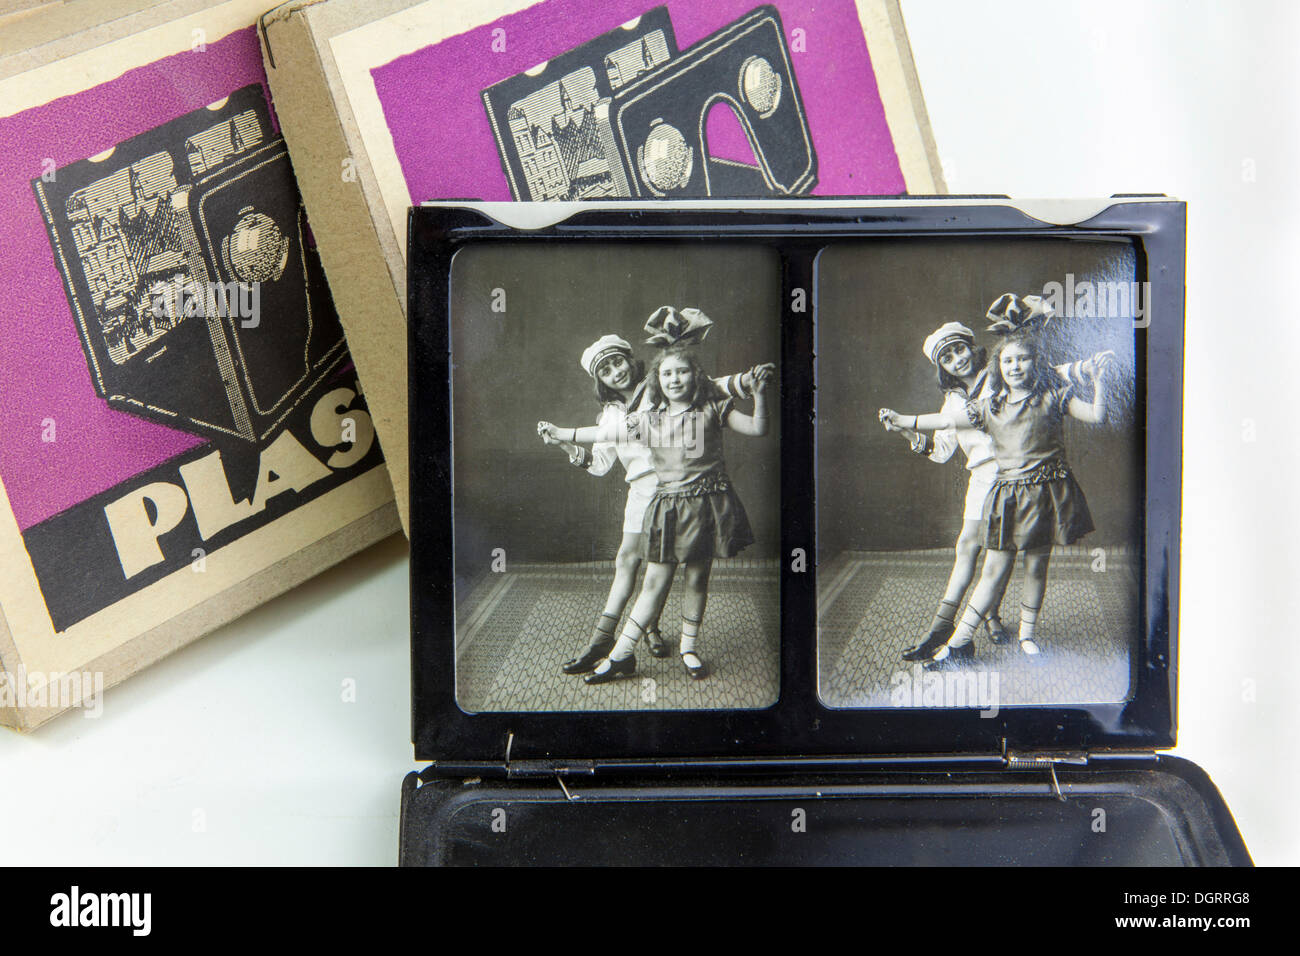 Stereoscopy, stereoscopic photos, 3D photo viewer, historical 3D photography, around 1920 - Stock Image